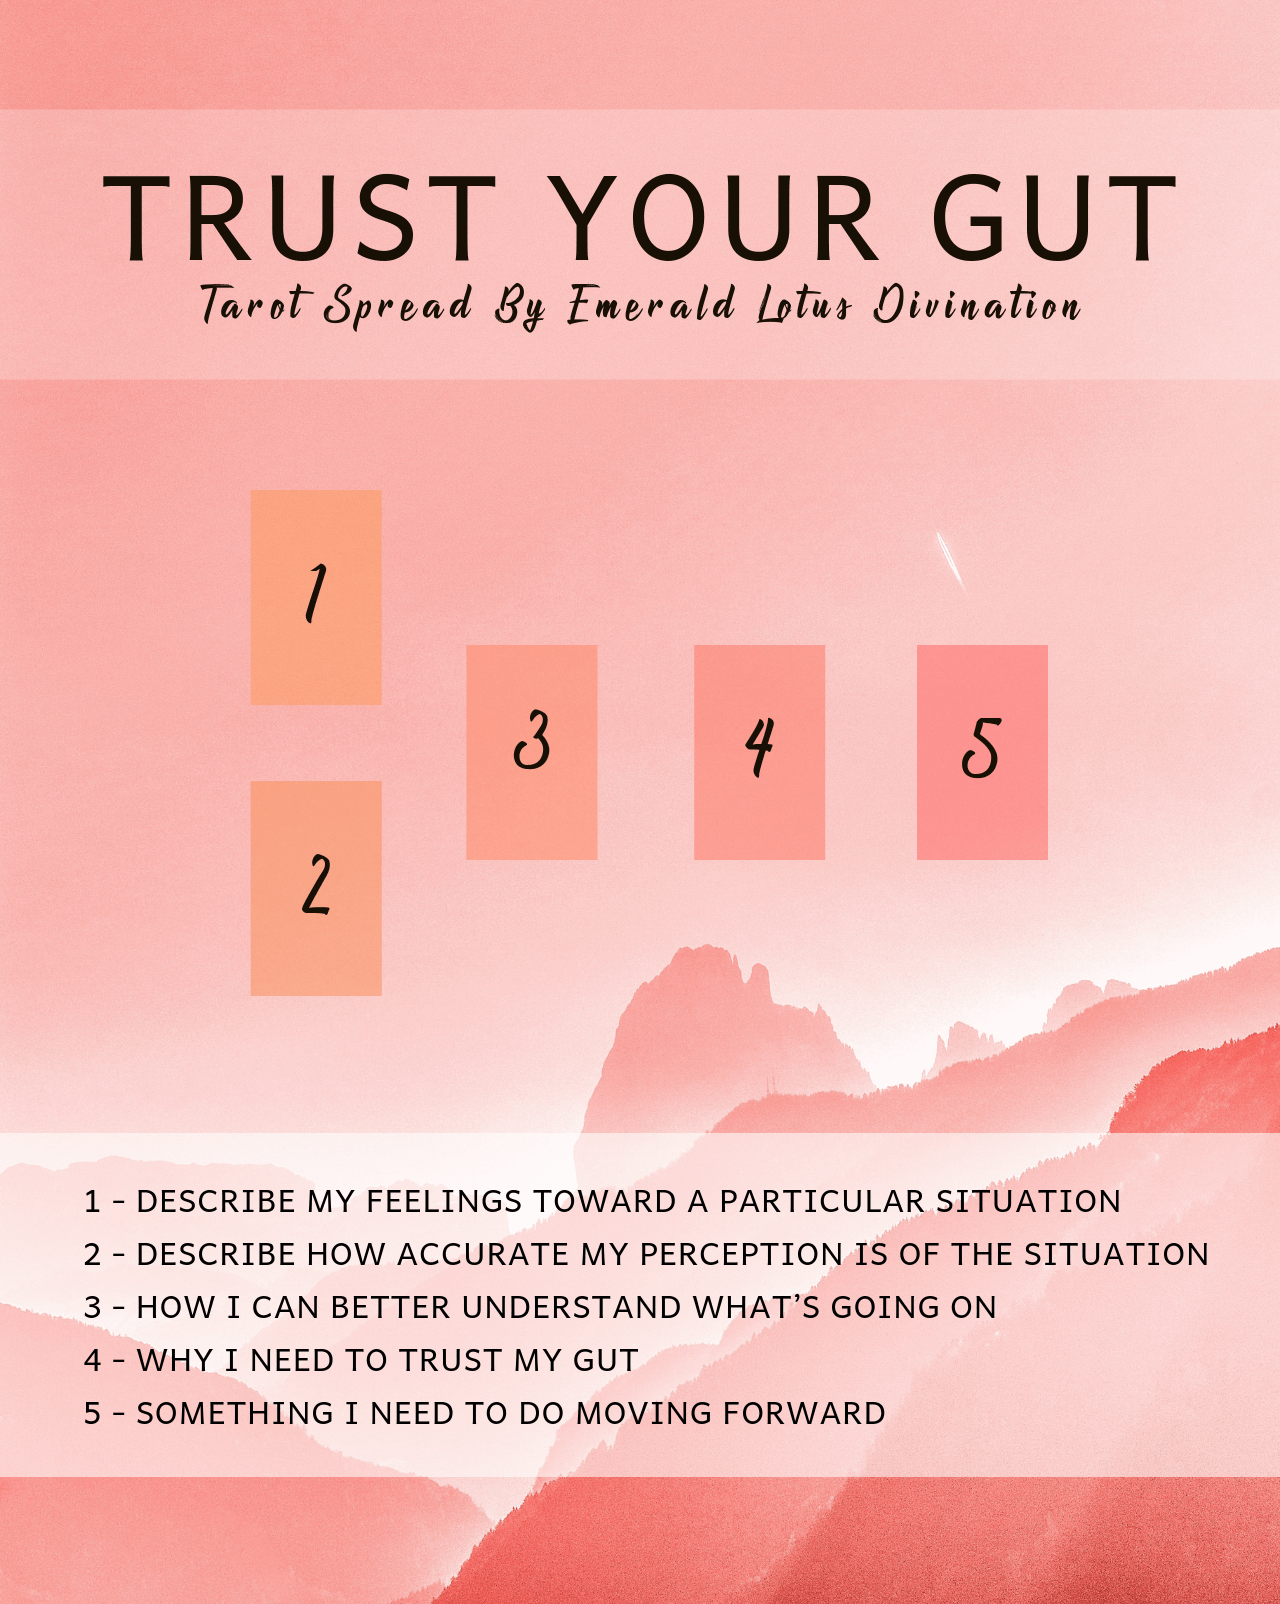 Trust-Your-Gut-Emerald-Lotus-1.png